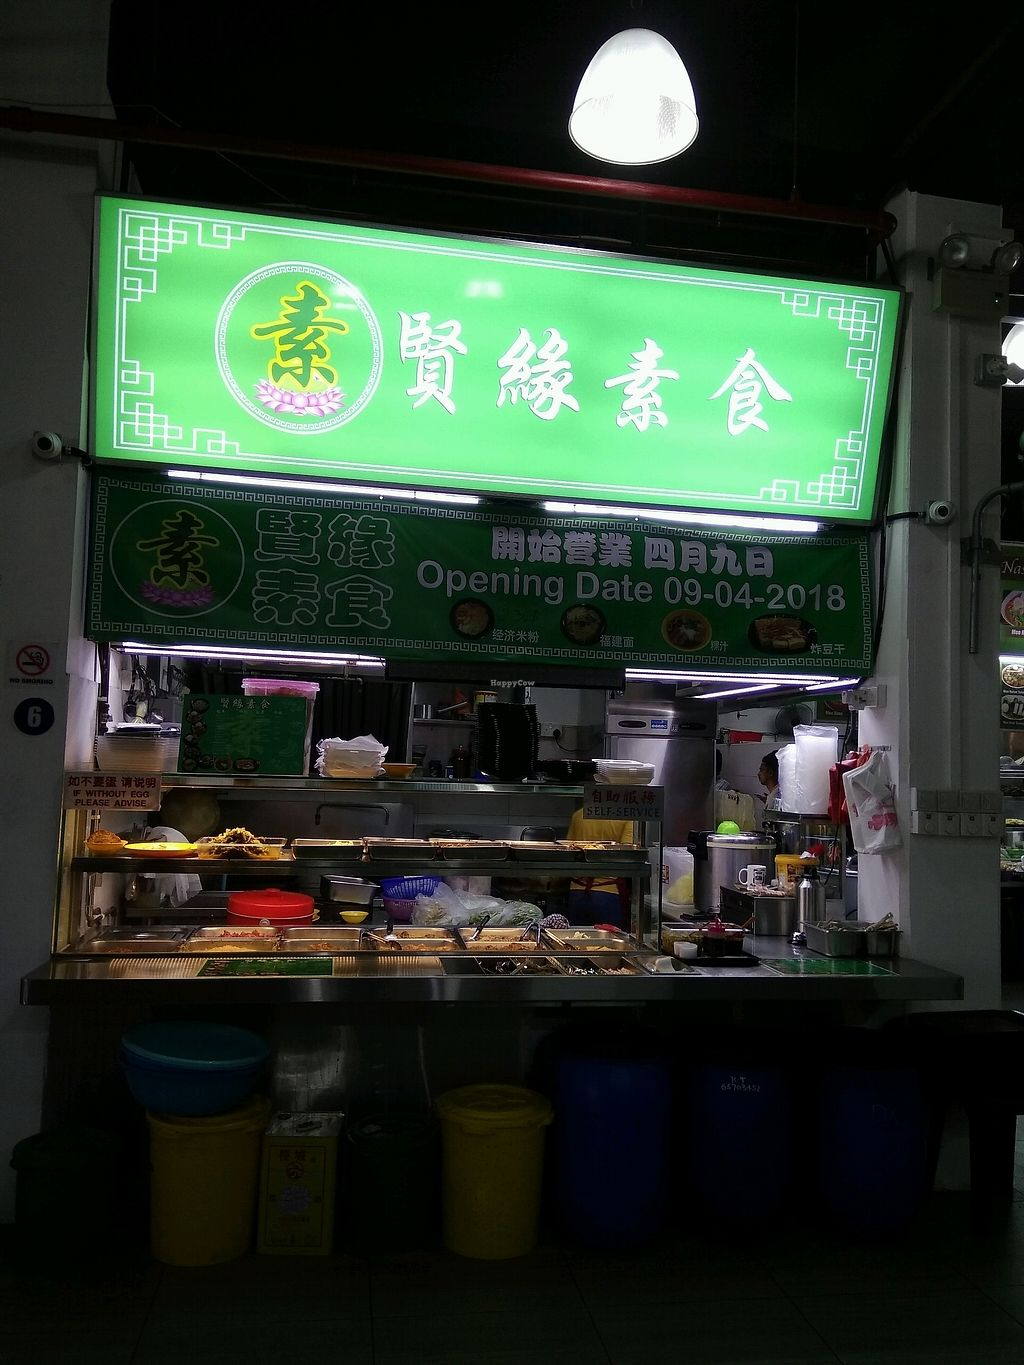 "Photo of 38 Vegetarian Stall  by <a href=""/members/profile/AdelOng"">AdelOng</a> <br/>New owner taken over on 9/4/2018 <br/> April 13, 2018  - <a href='/contact/abuse/image/109473/384859'>Report</a>"